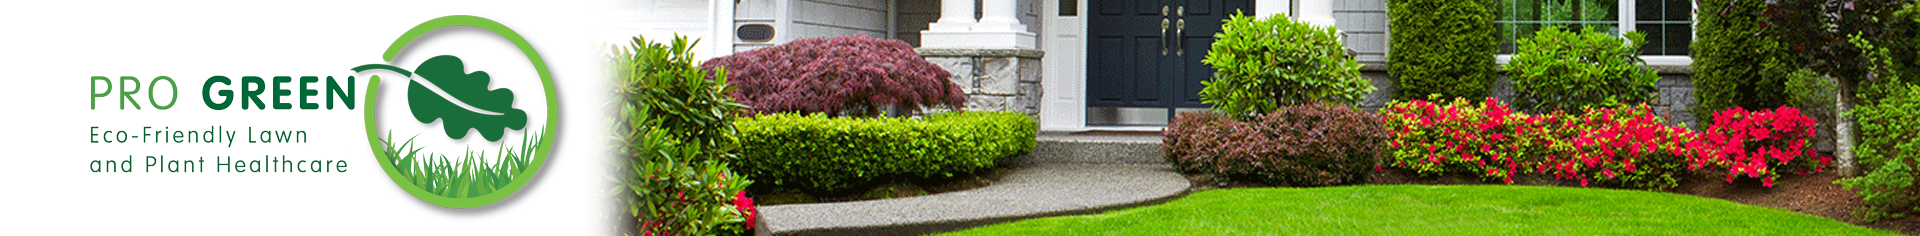 Pro Green Lawn, Tree, and Shrub Fertilzation and Care Sewell, NJ